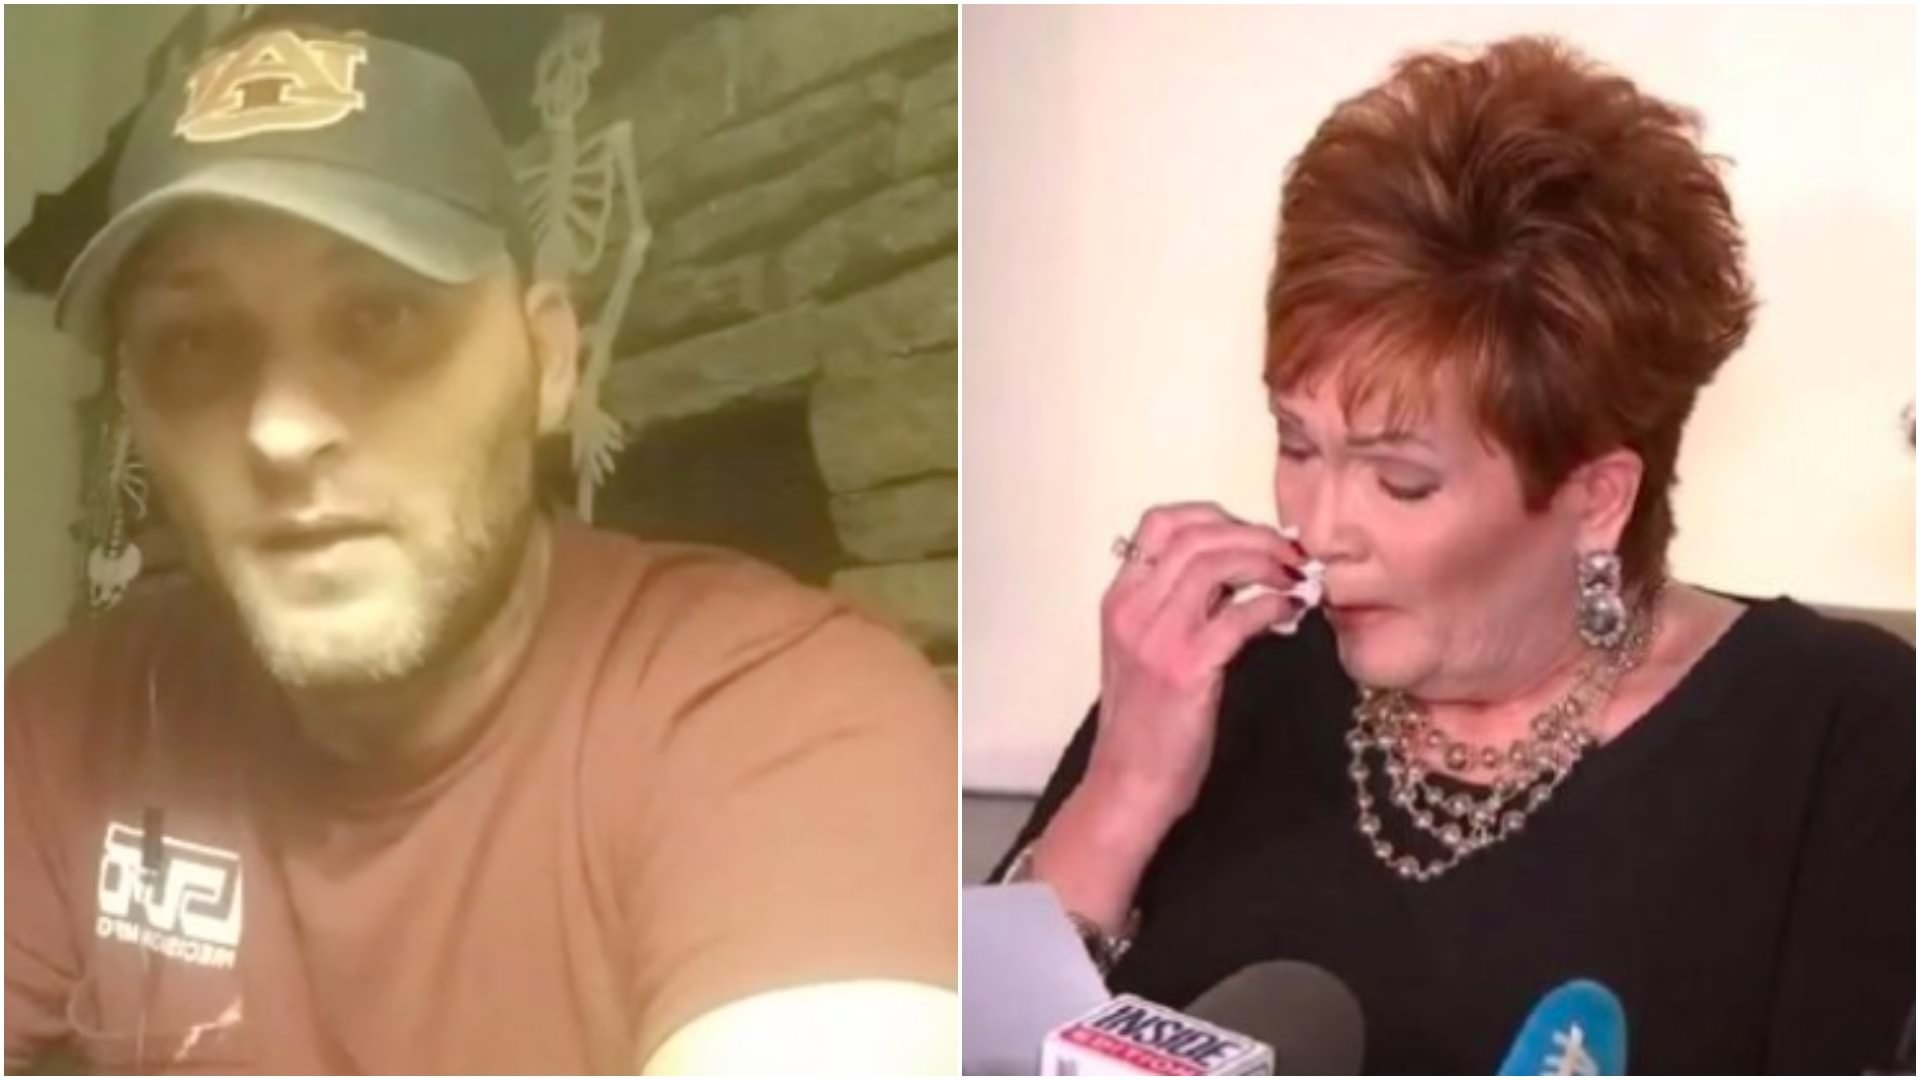 Stepson of Roy Moore Accuser Says She's LYING - 'I STAND BEHIND THE JUDGE 100%' (VIDEO)